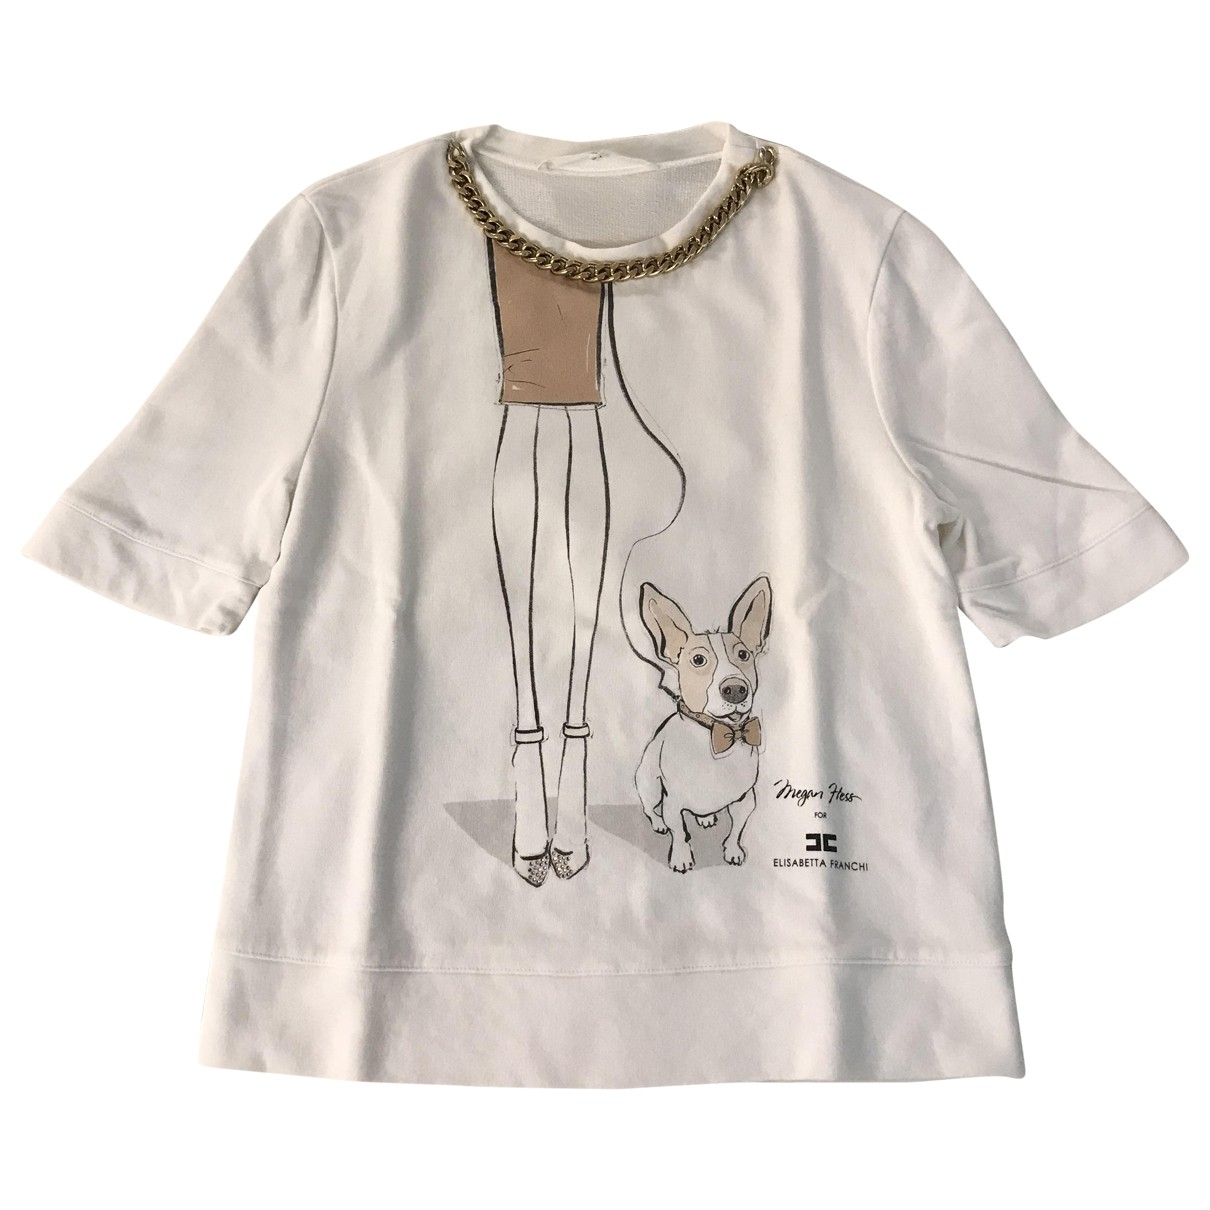 Elisabetta Franchi \N White Cotton  top for Women 44 IT